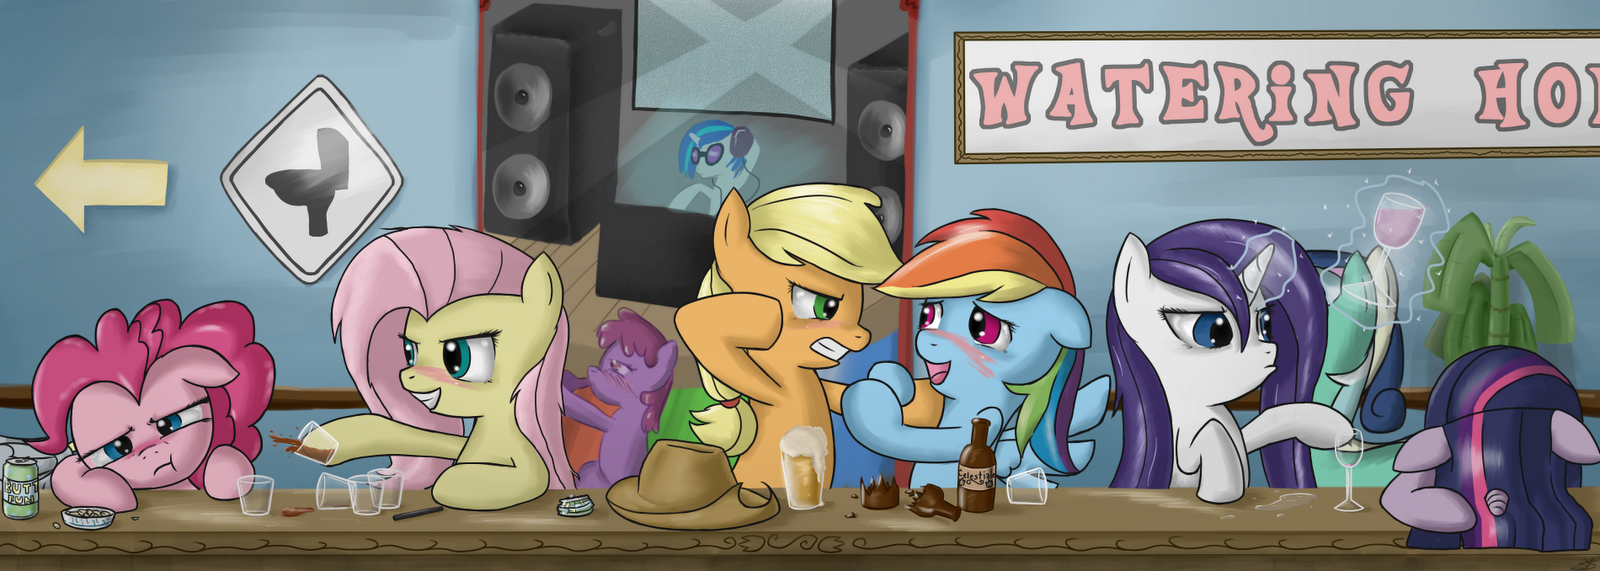 My Little Pony Freindship is Magic: Episode 7 Last Friday Night - The